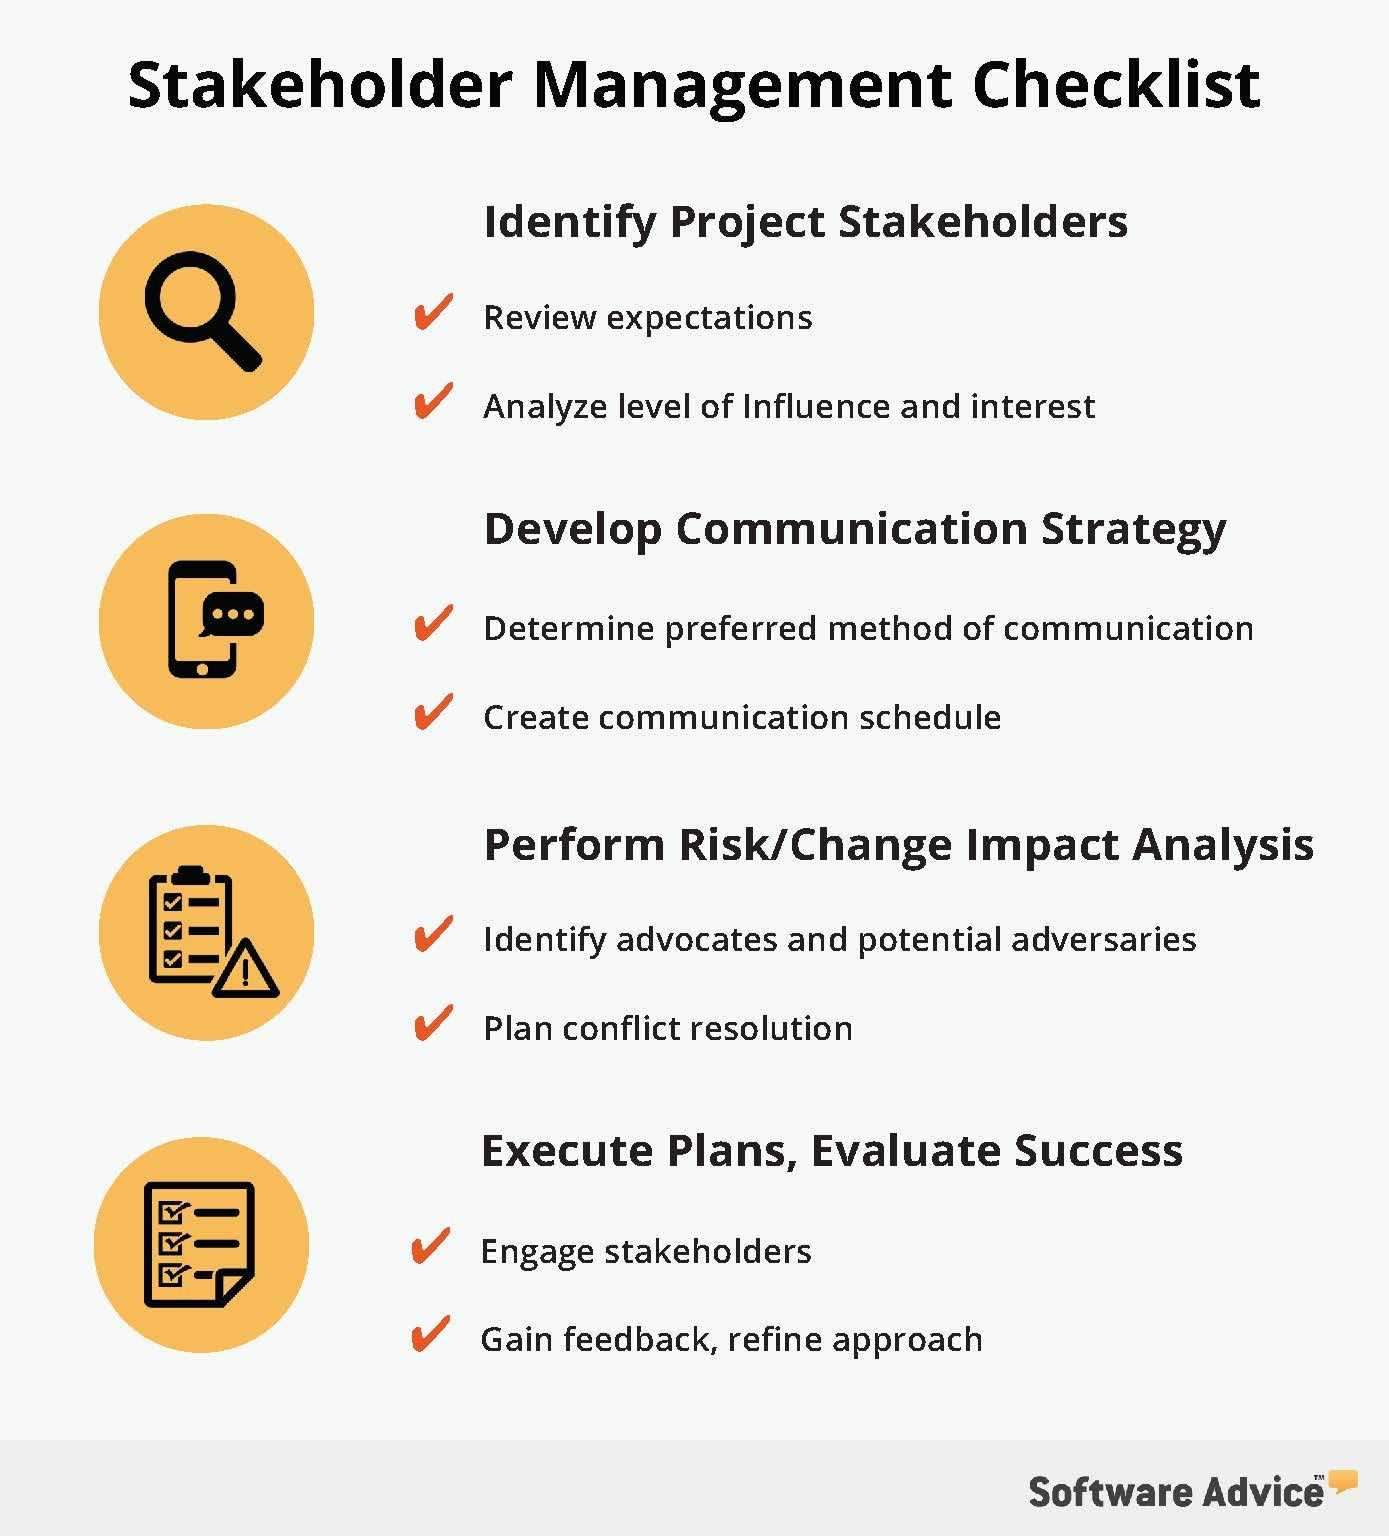 How To Effectively Manage And Engage Project Stakeholders Checklist Agile Project Management Stakeholder Management Project Management Templates